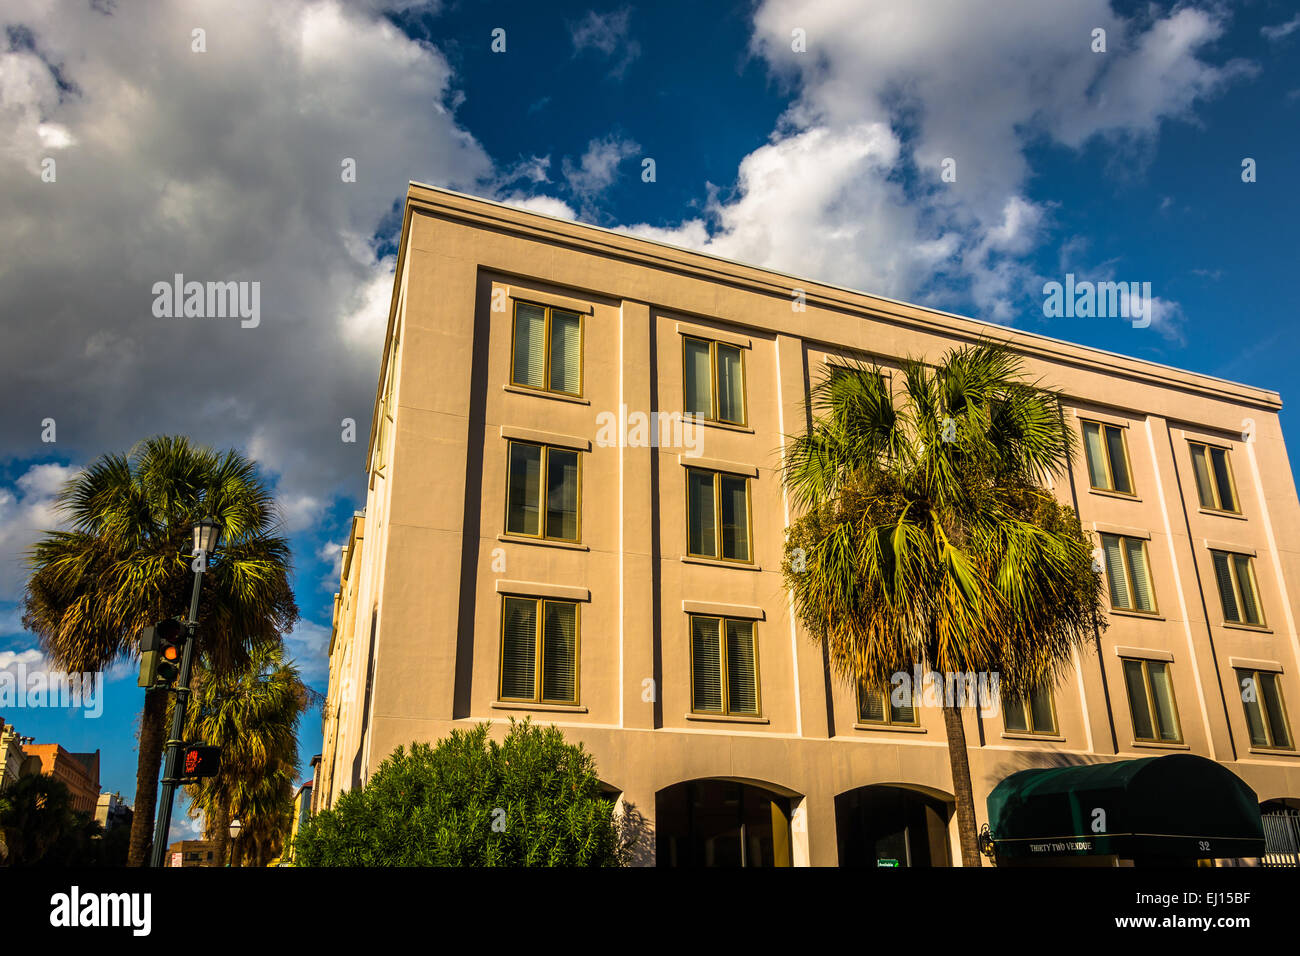 Palm trees and building on Vendue Street in Charleston, South Carolina. - Stock Image